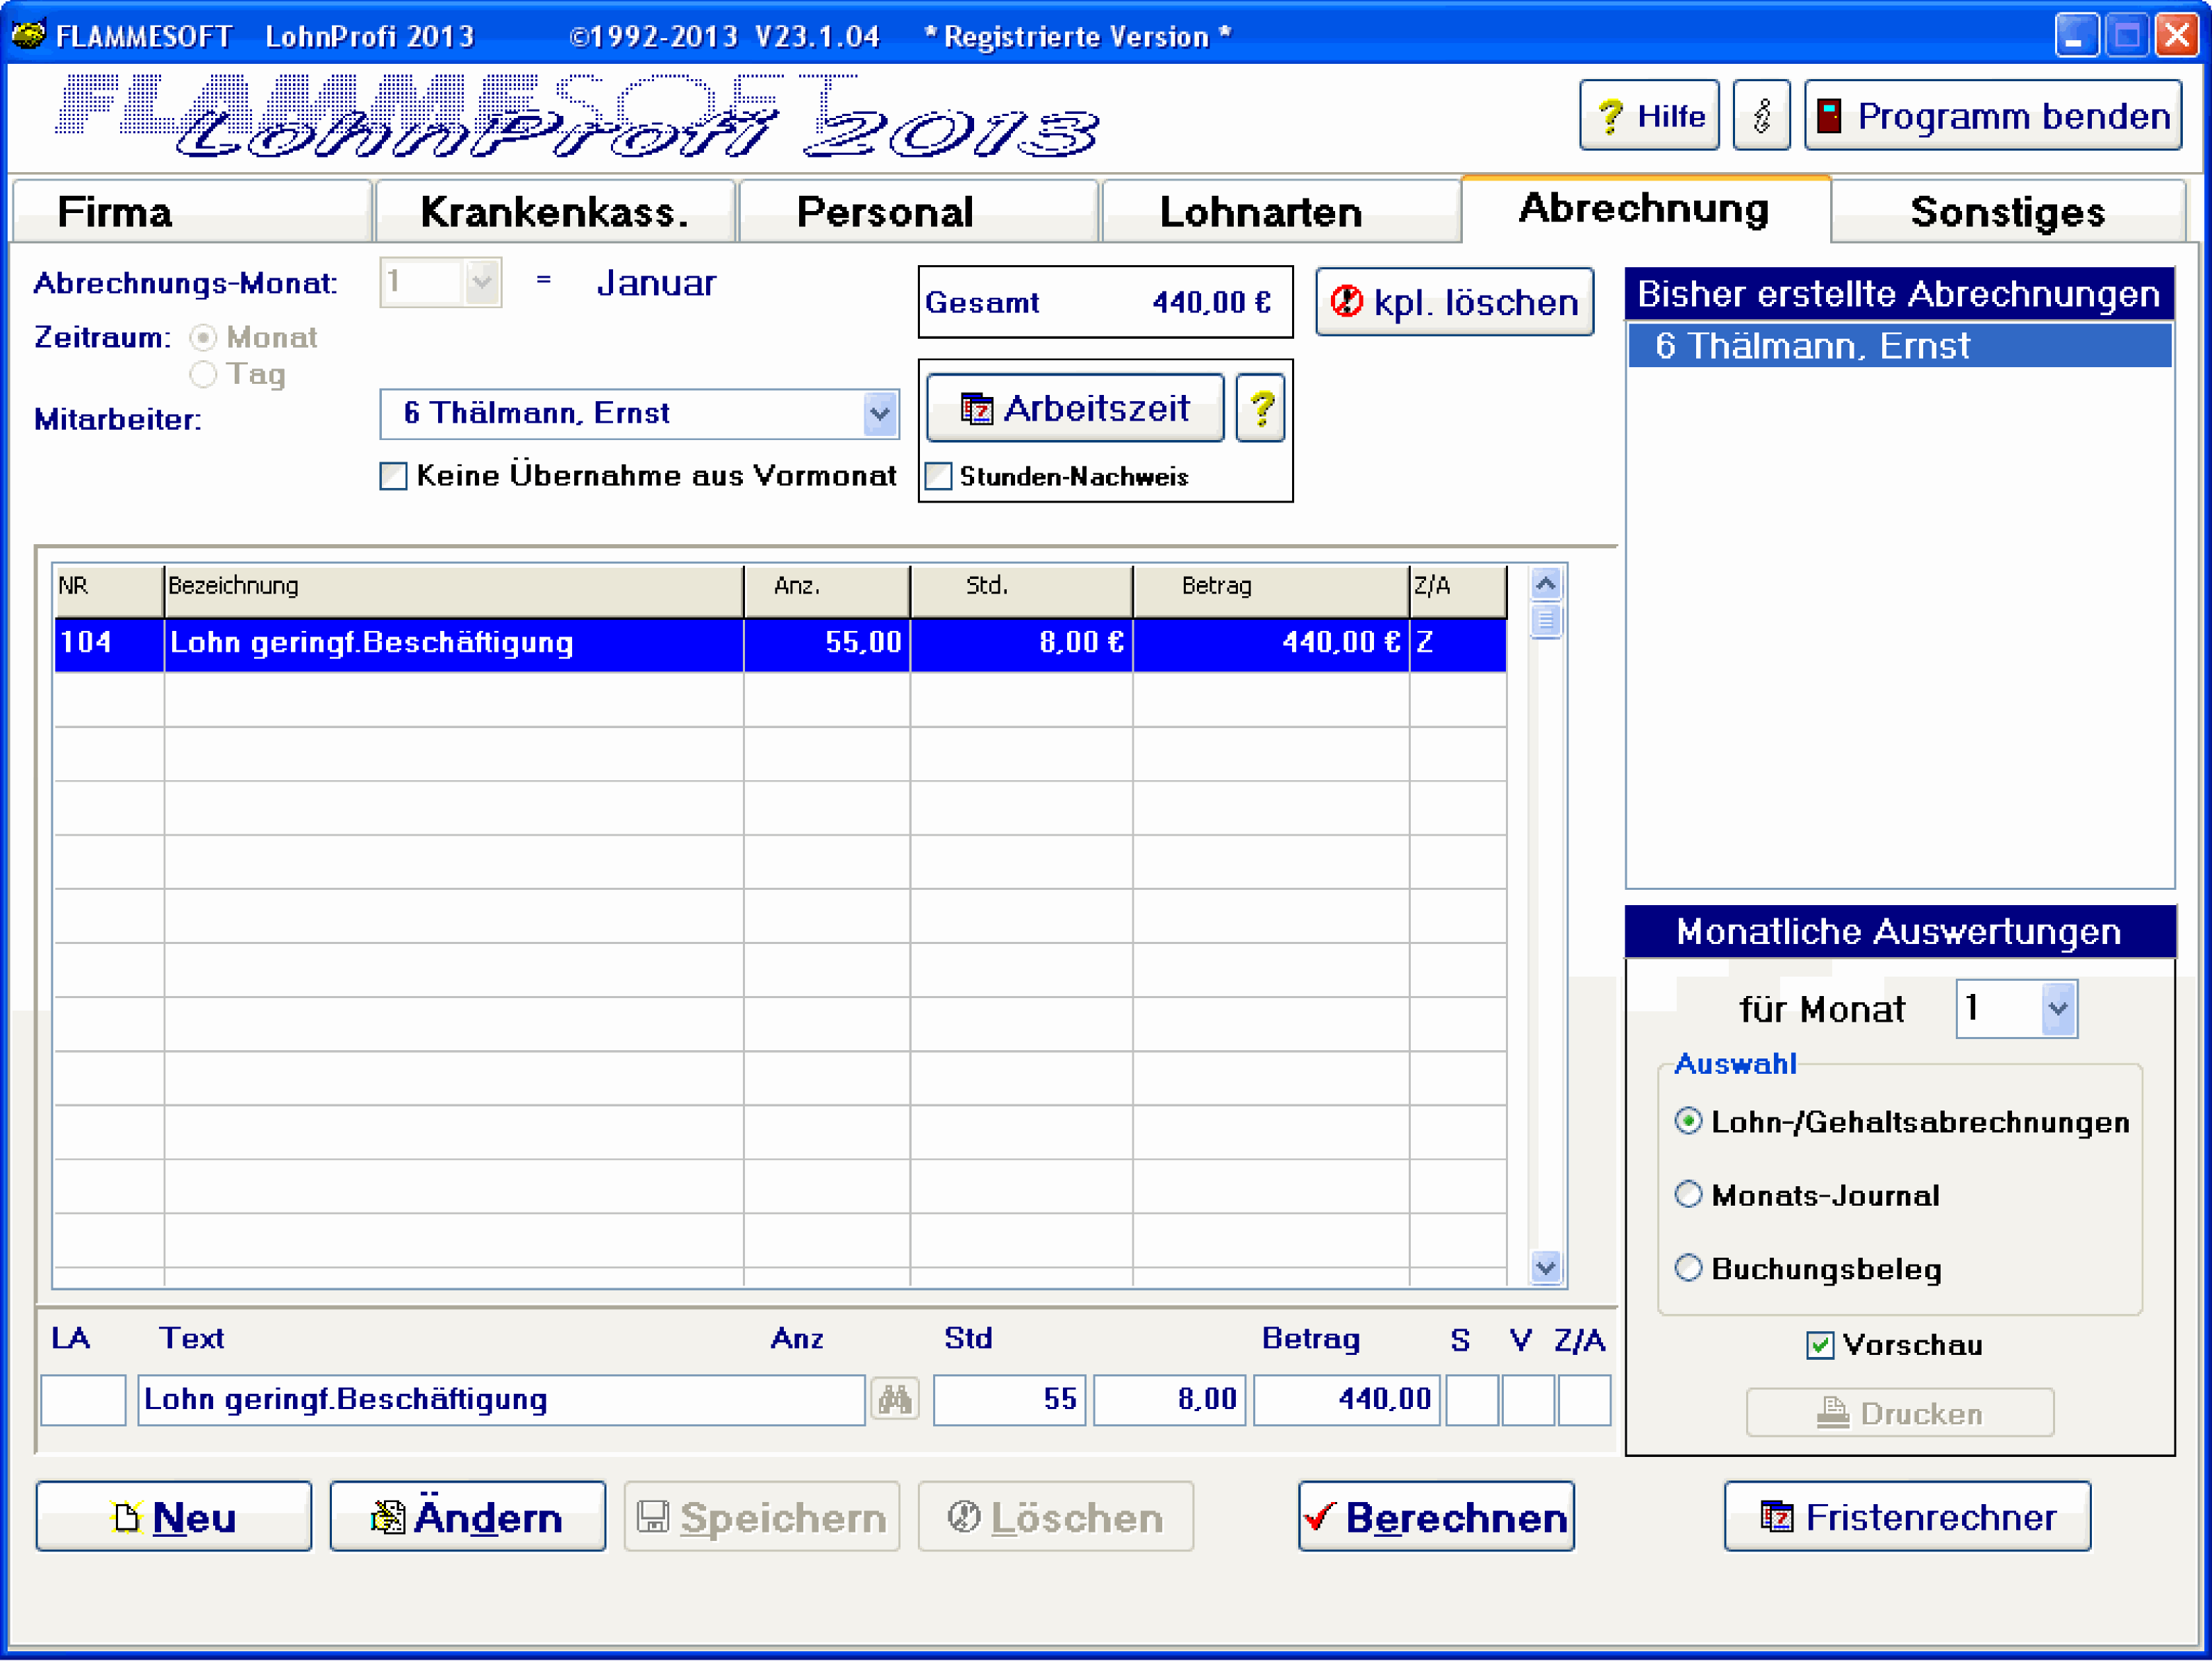 FLAMMESOFT LohnProfi 2013 23.1.03 Screenshot